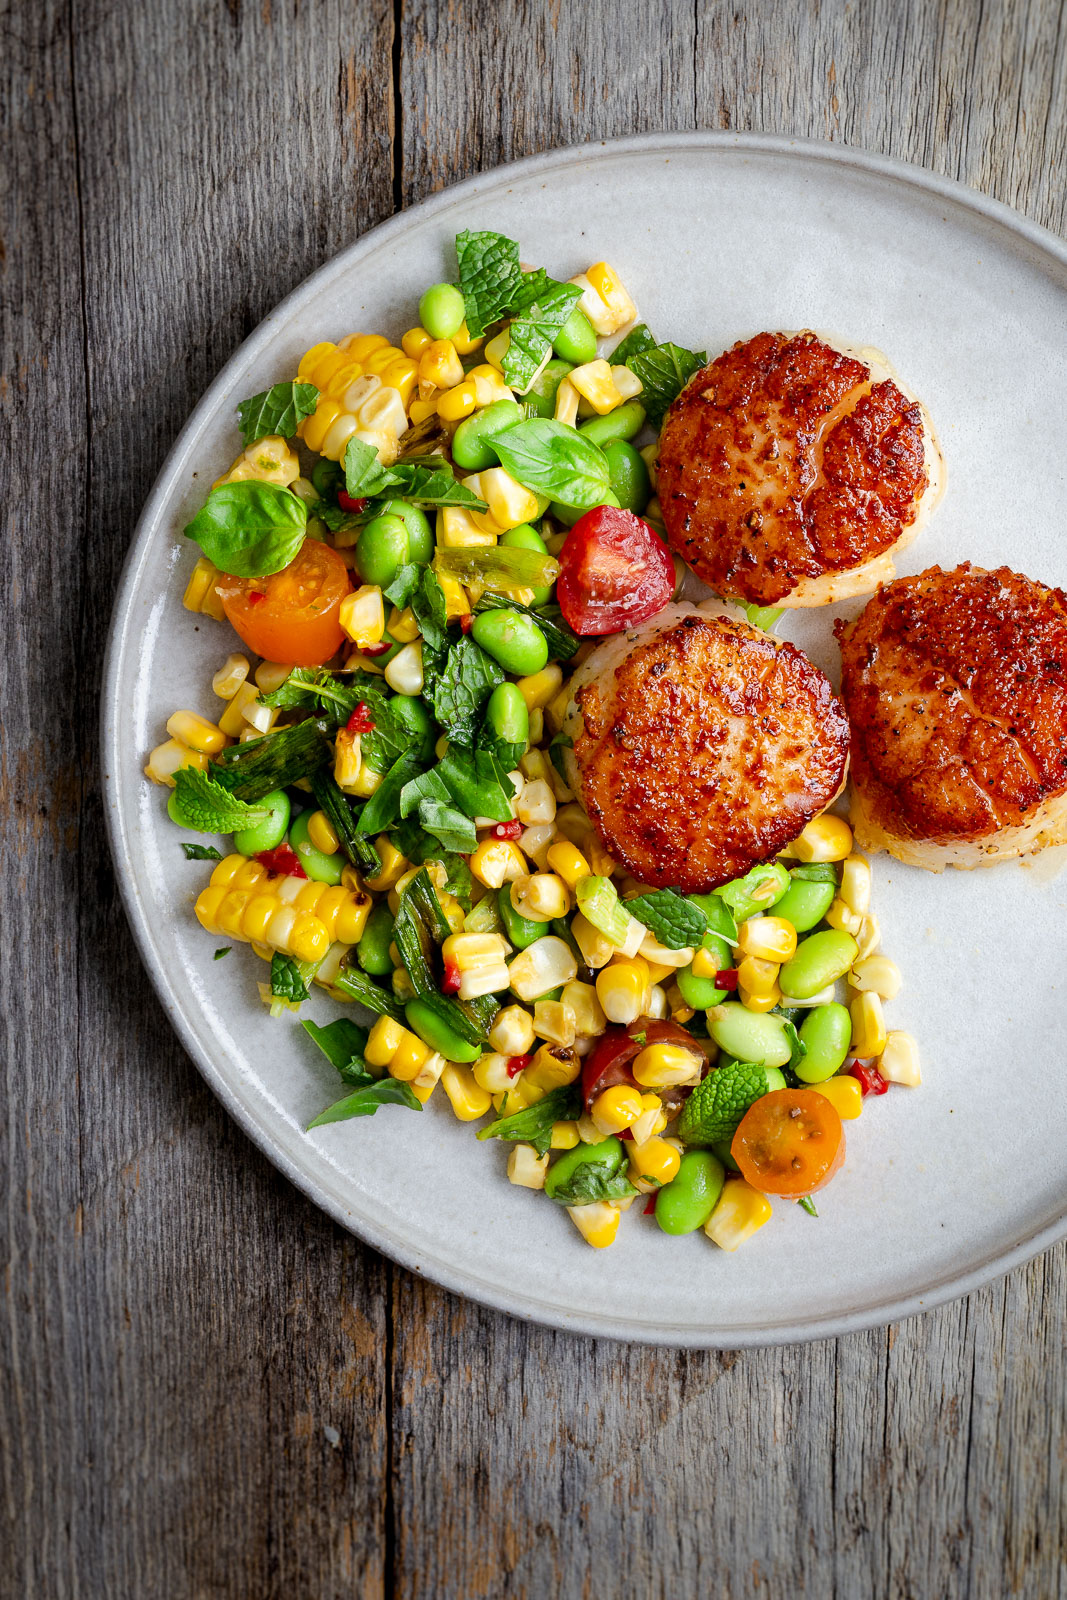 Three seared scallops and a salad of corn, tomatoes, edamame, and chopped herbs on a gray plate.